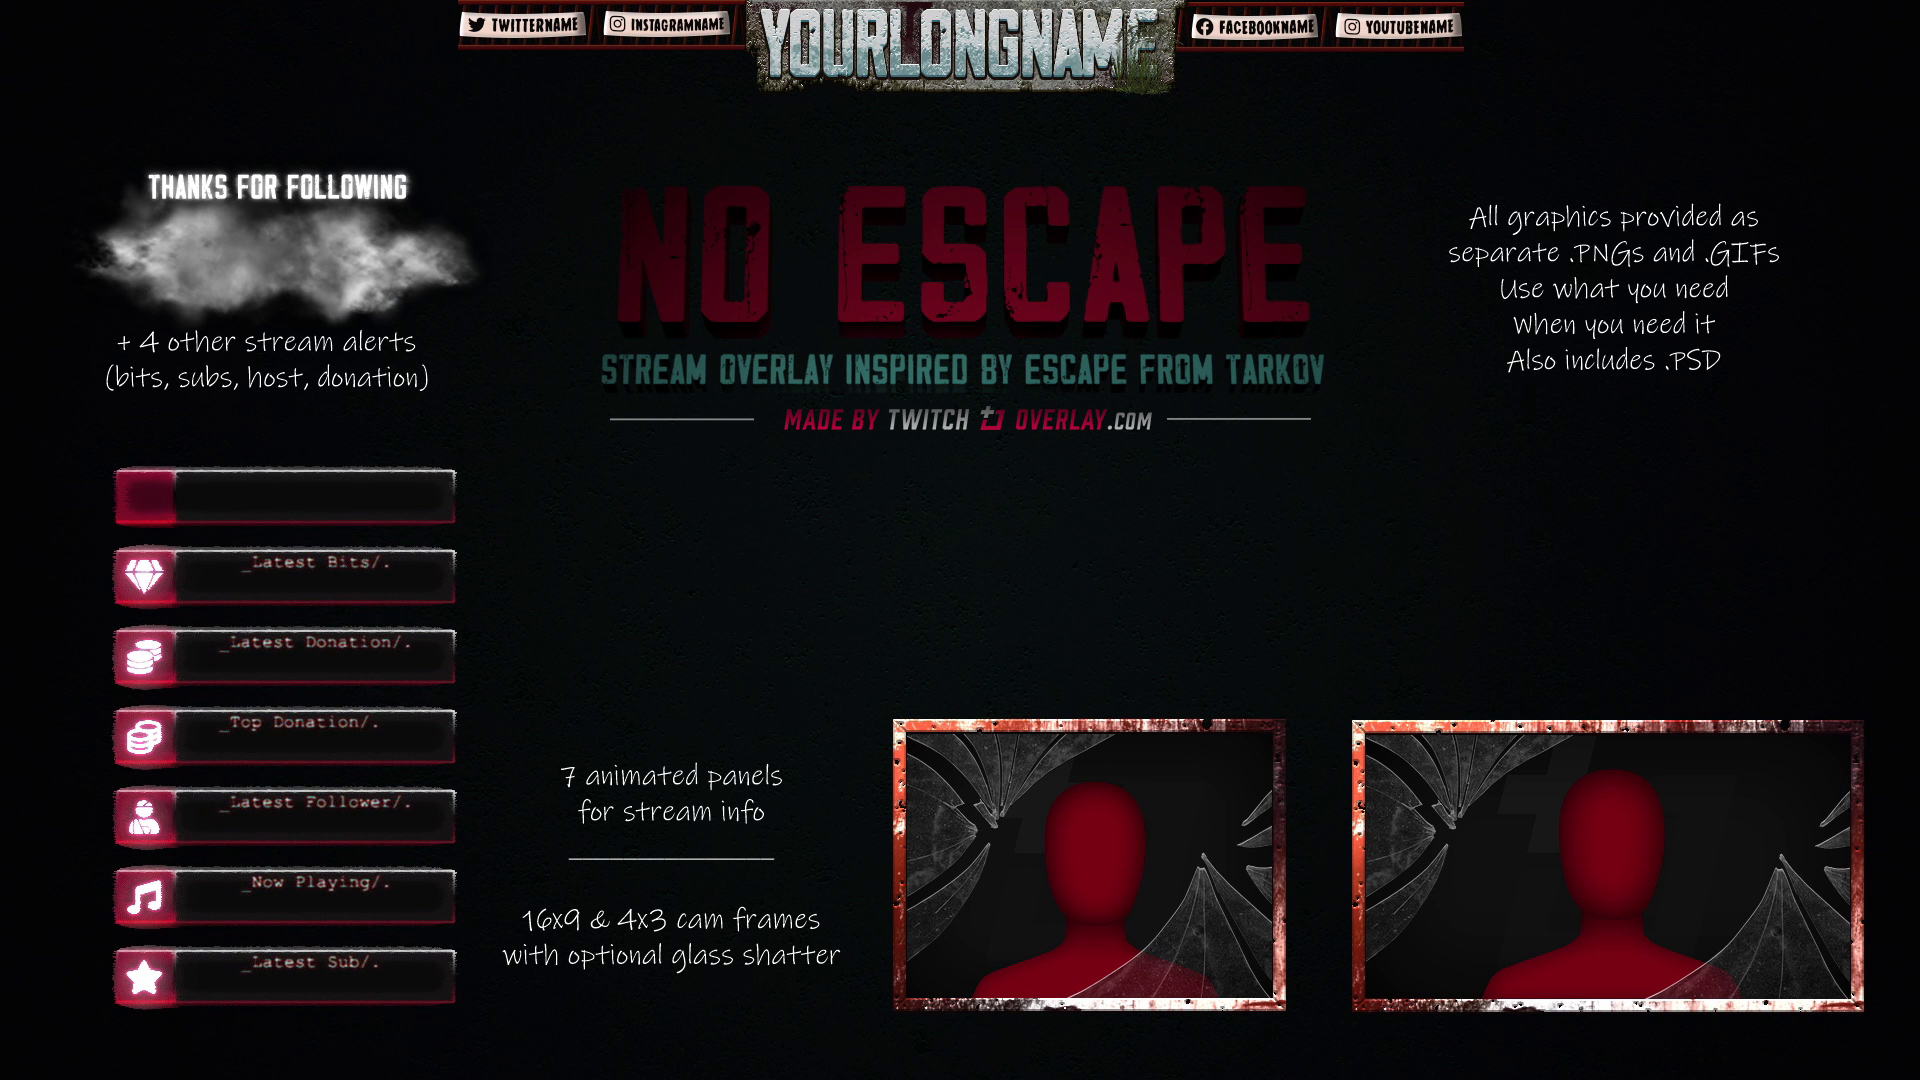 escape from tarkov twitch overlay - Twitch Overlay